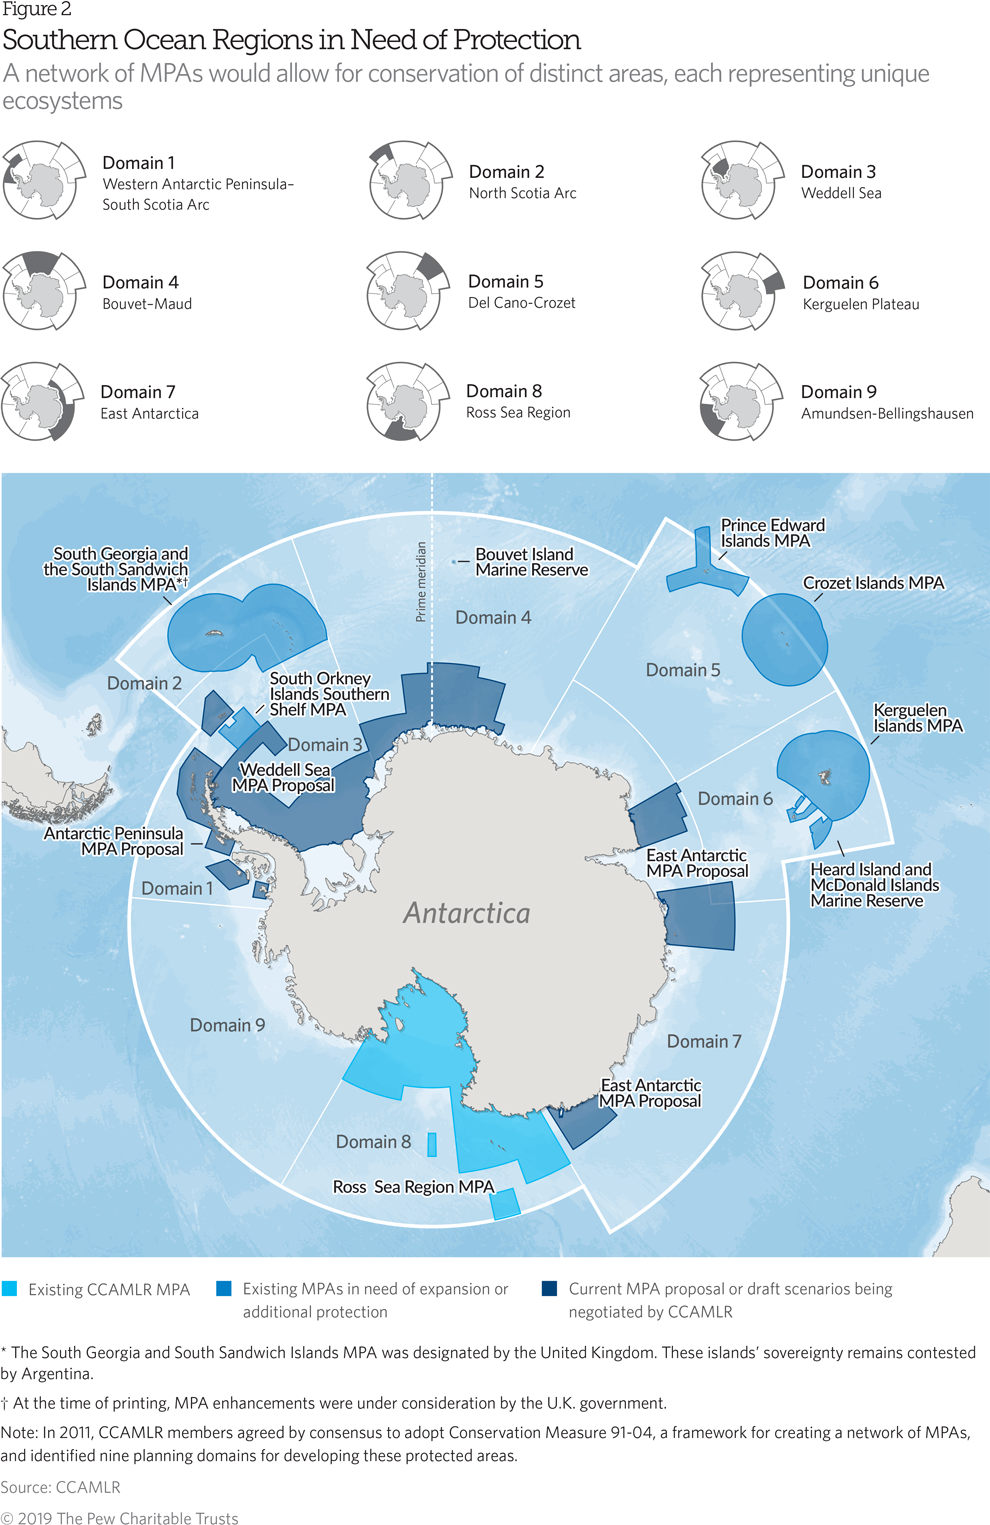 A Network of Marine Protected Areas in the Southern Ocean